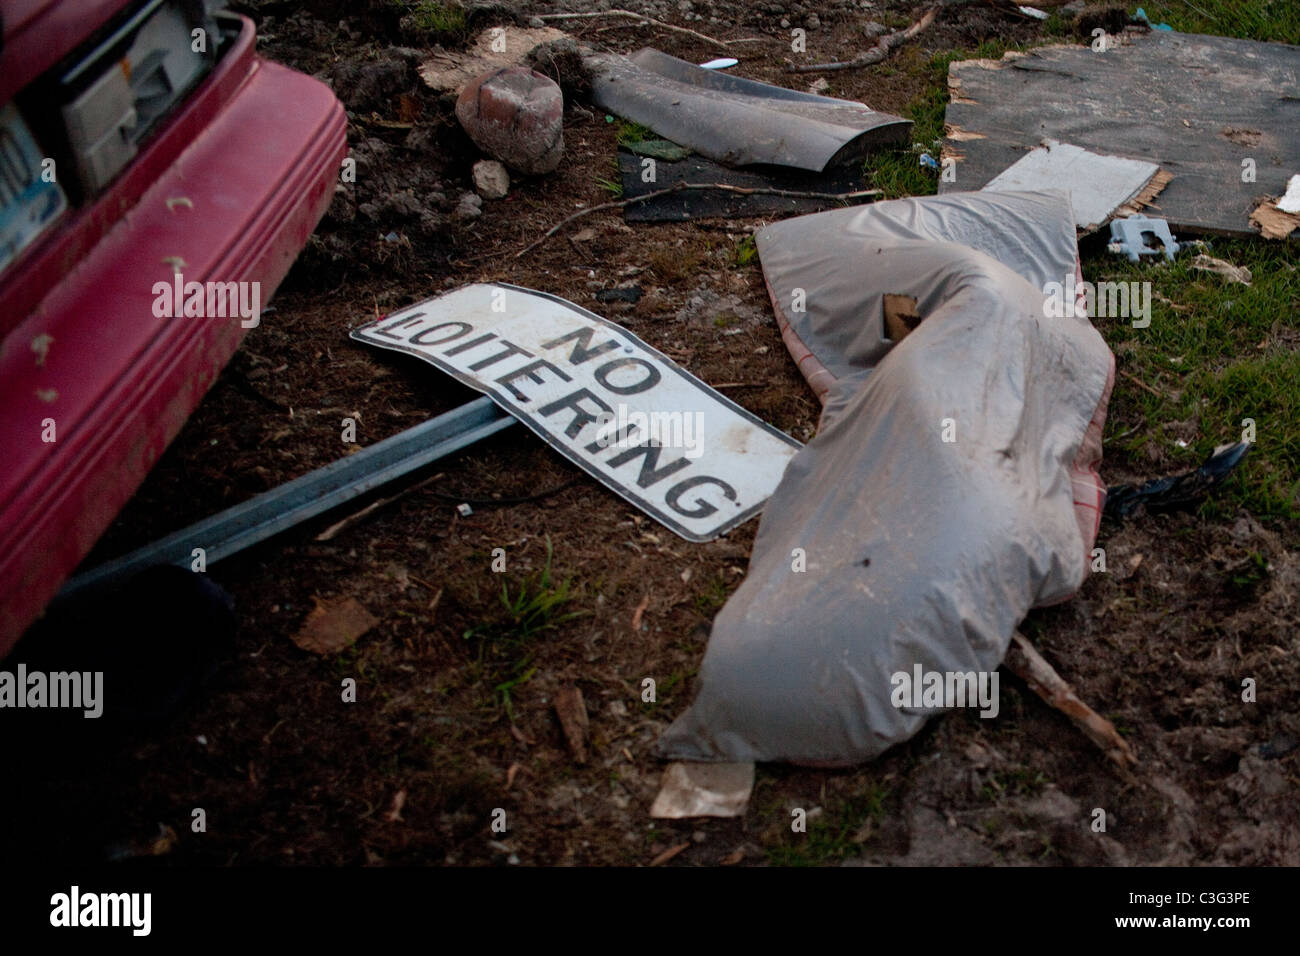 'No Loitering' sign, debris and wreckage on the ground after a tornado devastated Tuscaloosa Alabama - Stock Image